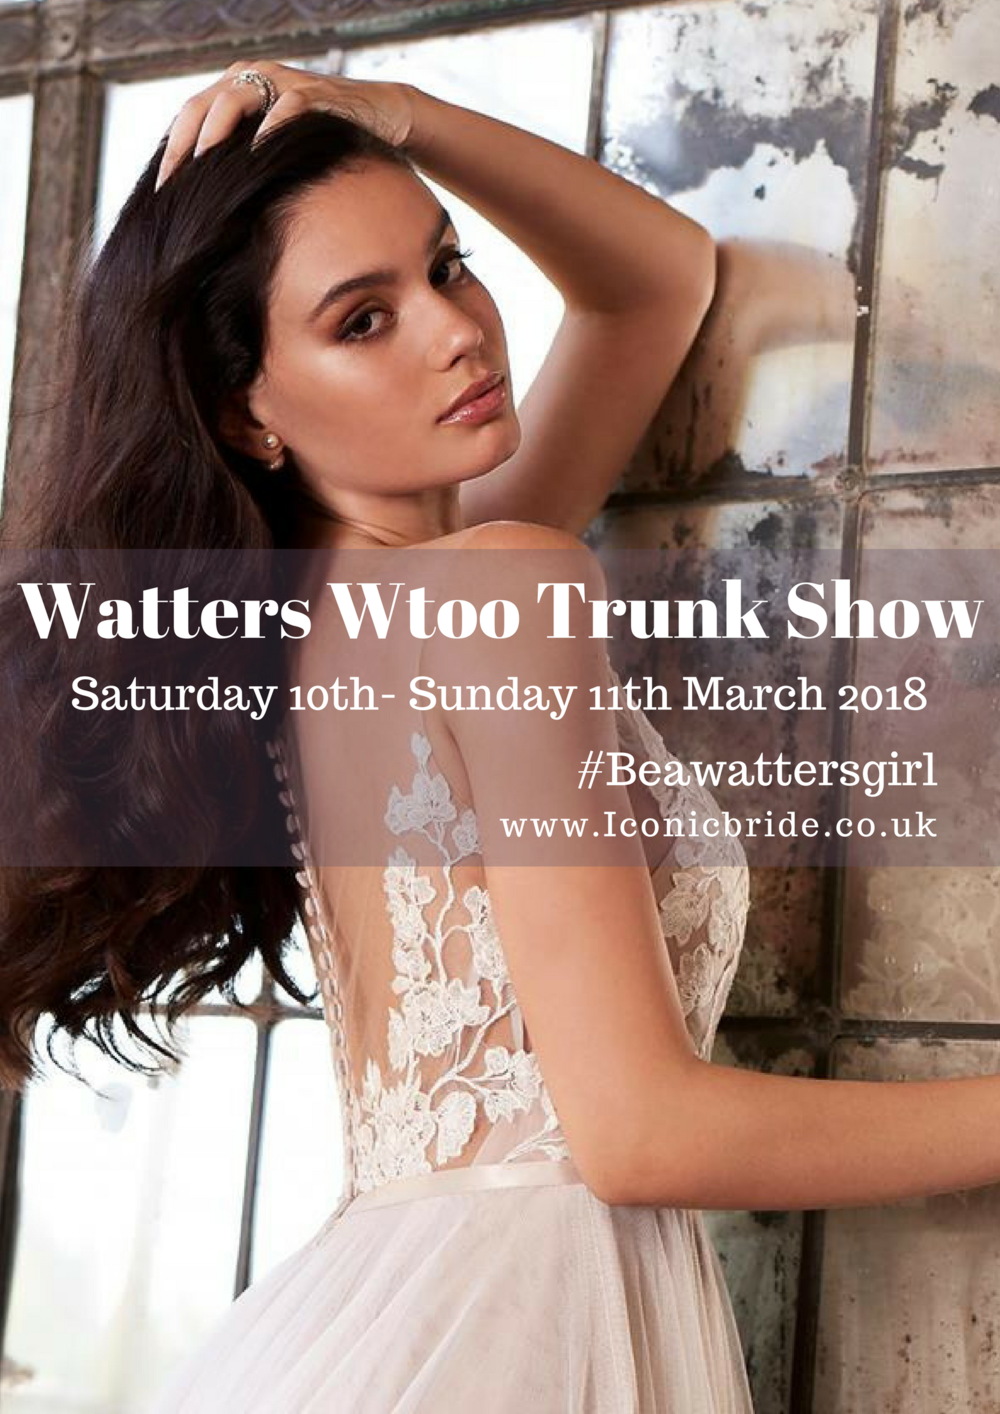 Watters Wtoo Trunk Showposter (2).png